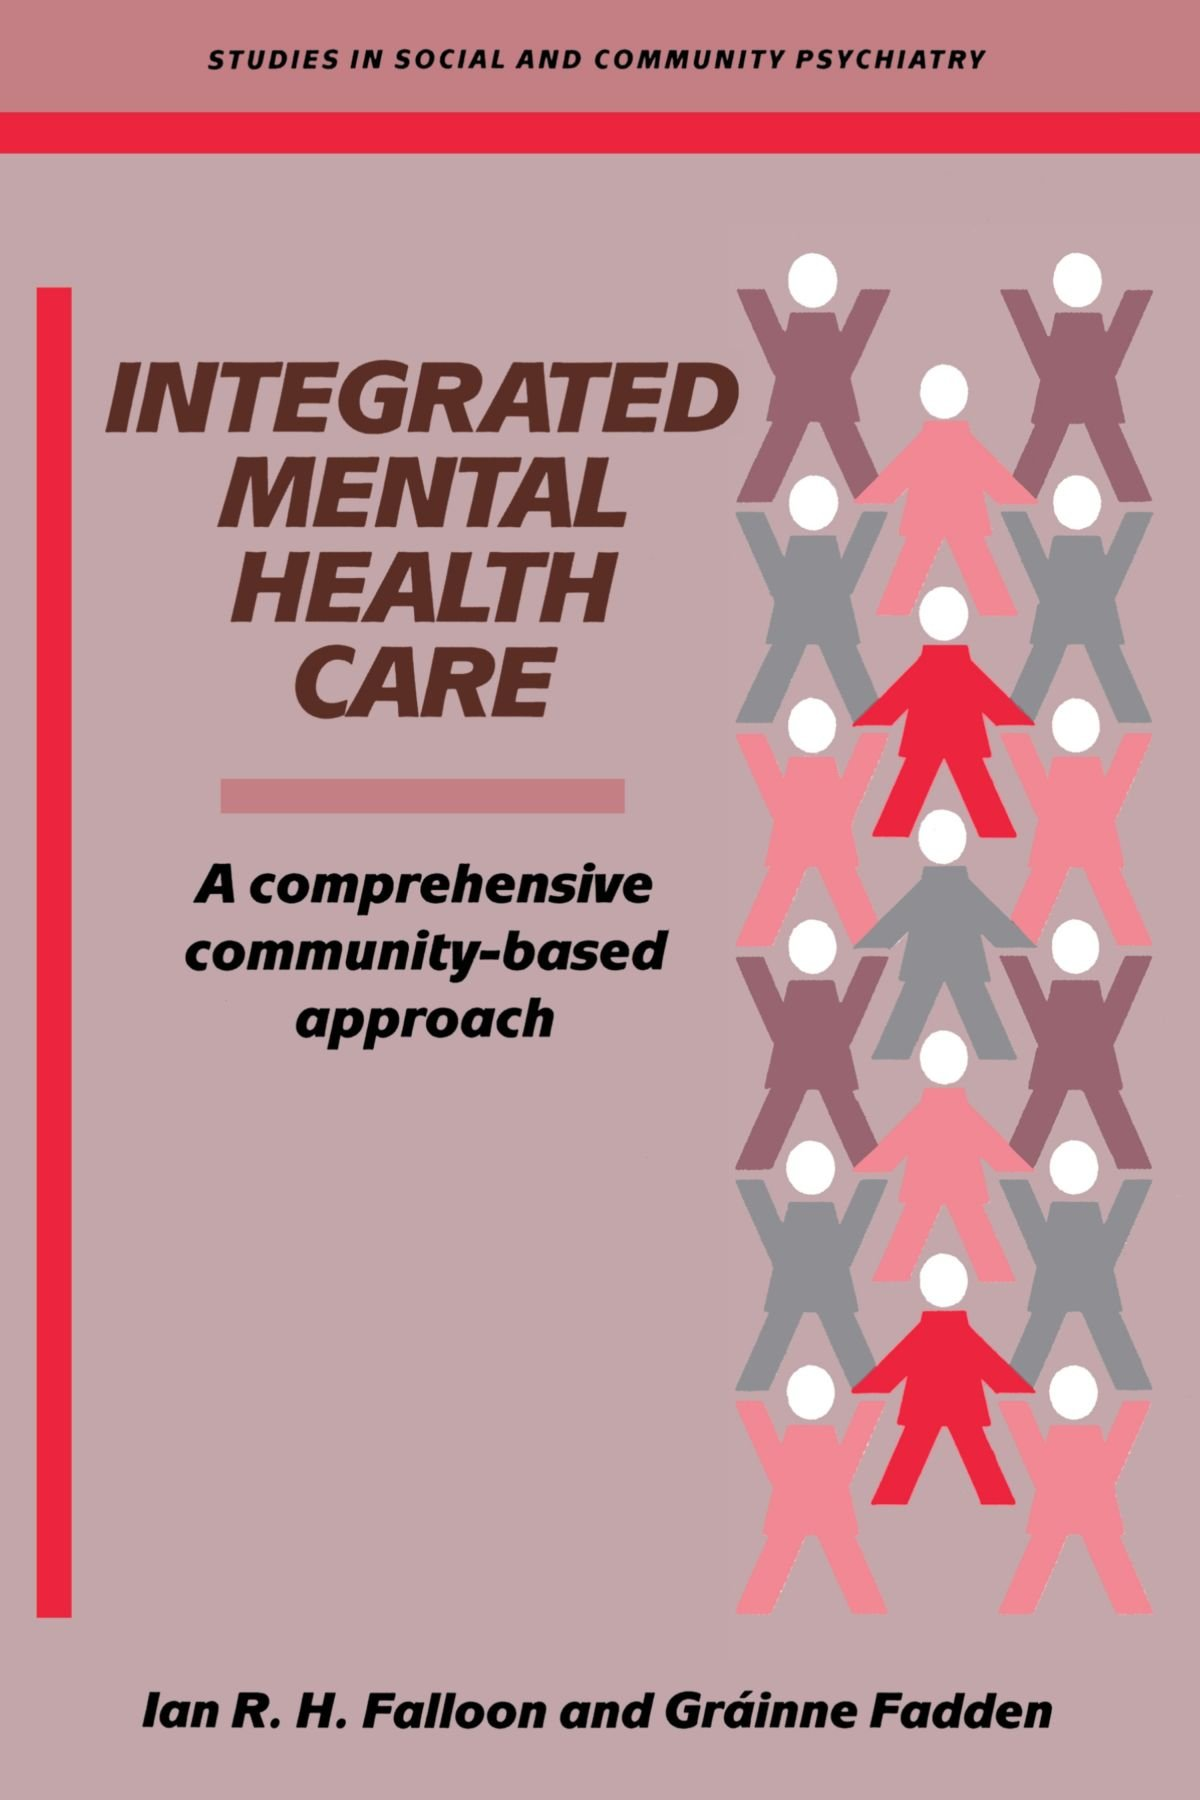 Falloon, Ian R.H., Grainne Fadden. Integrated Mental Health Care: A Comprehensive, Community-Based Approach